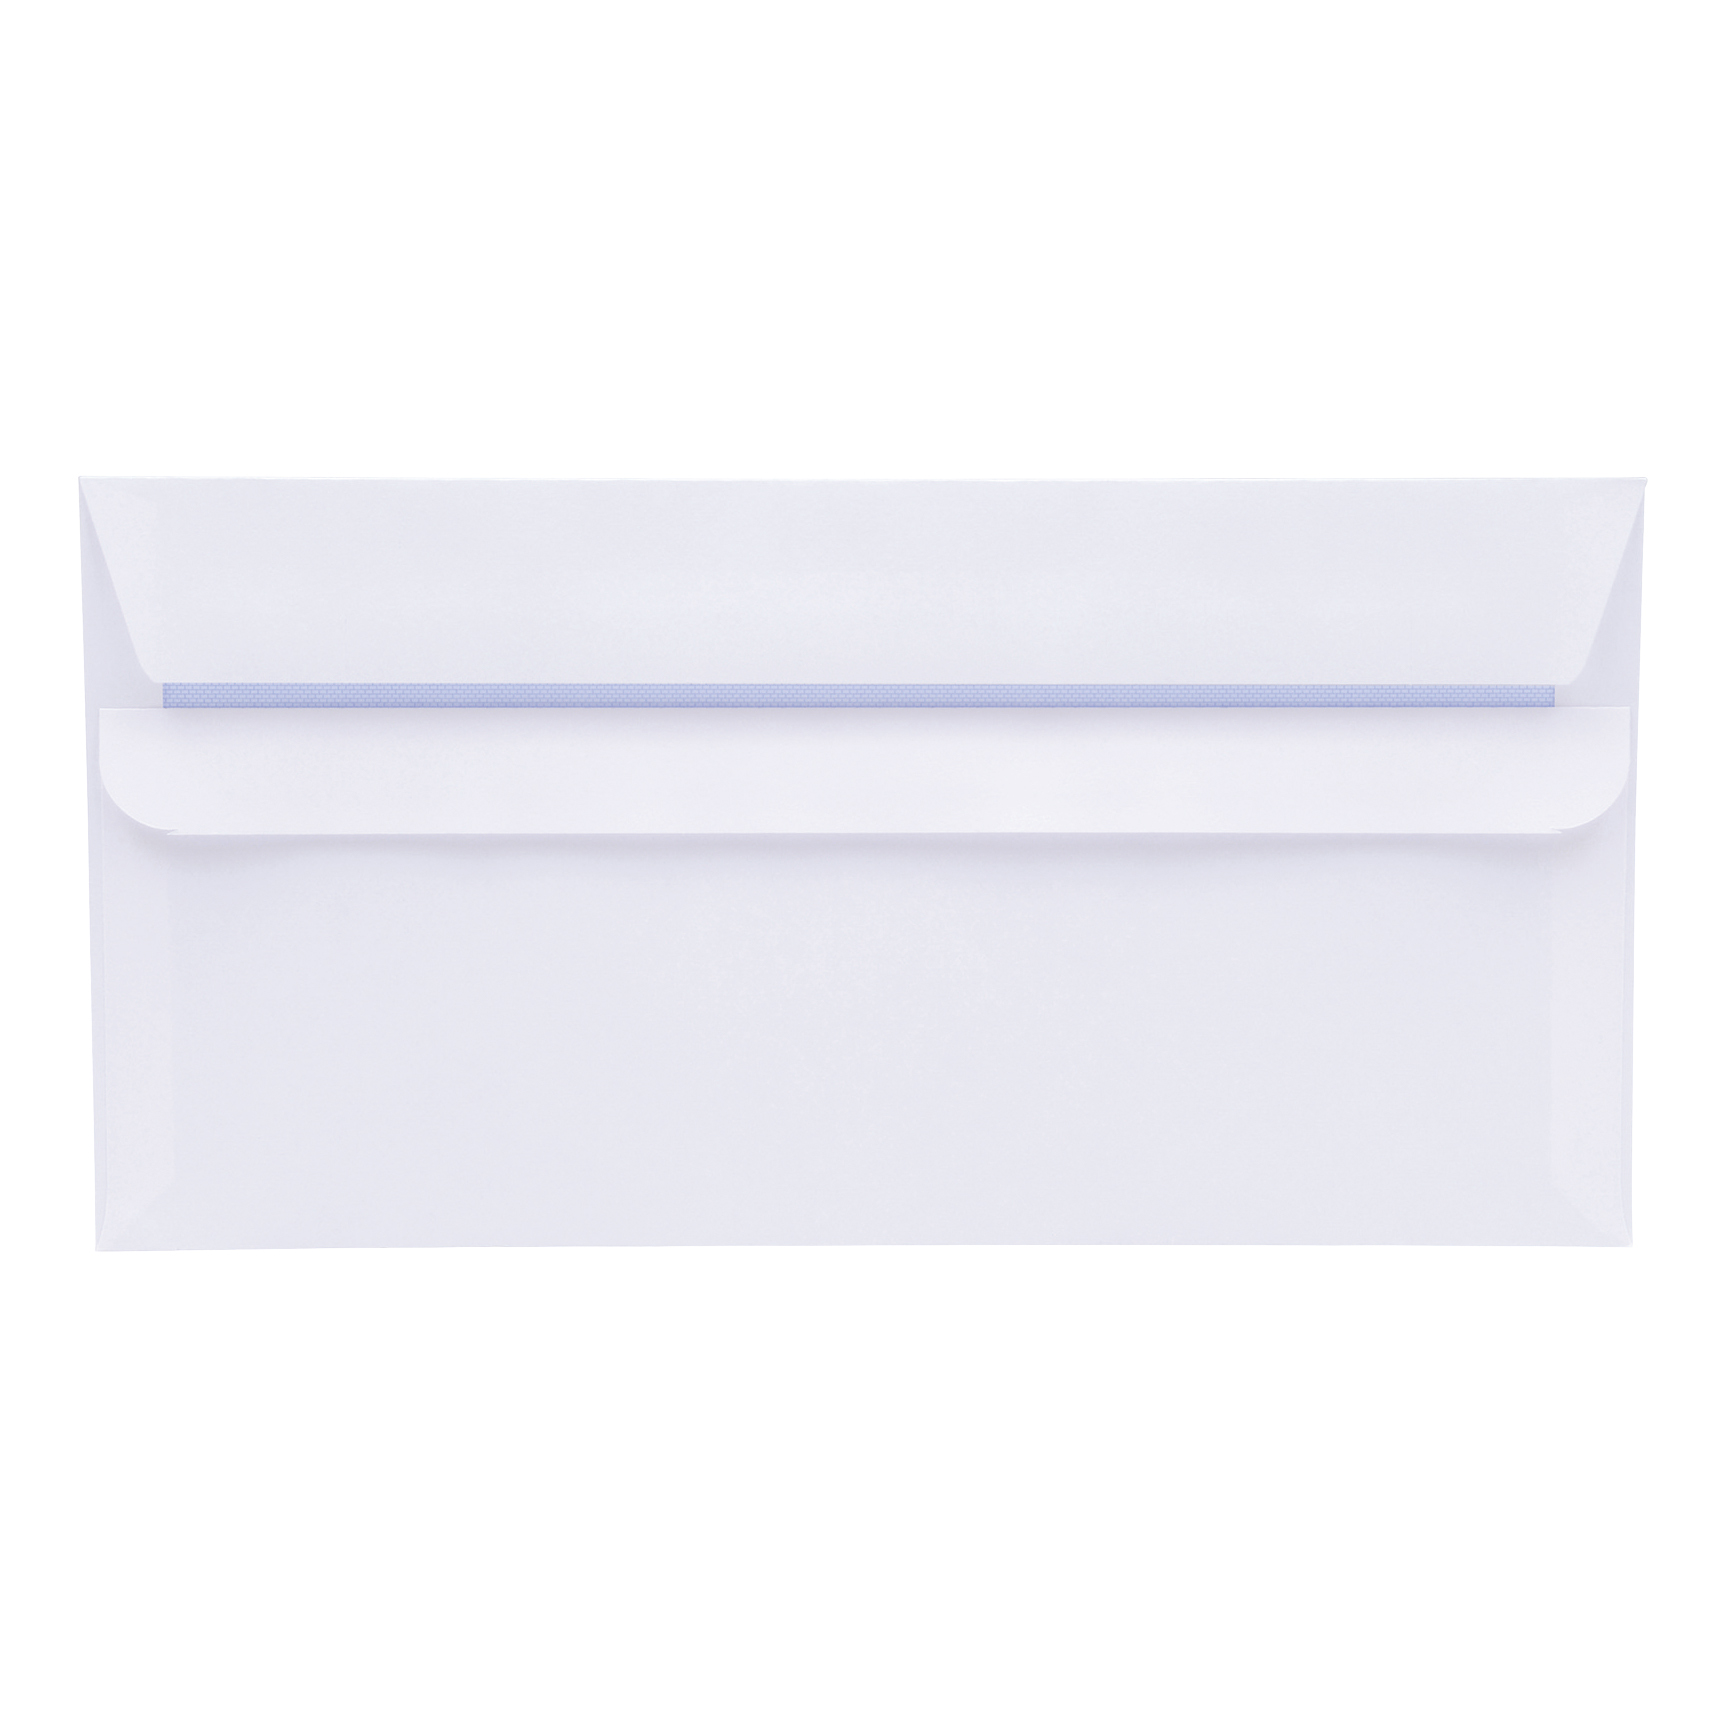 DL 5 Star Office Envelopes PEFC Wallet Self Seal 80gsm DL 220x110mm White Retail Pack Pack 50